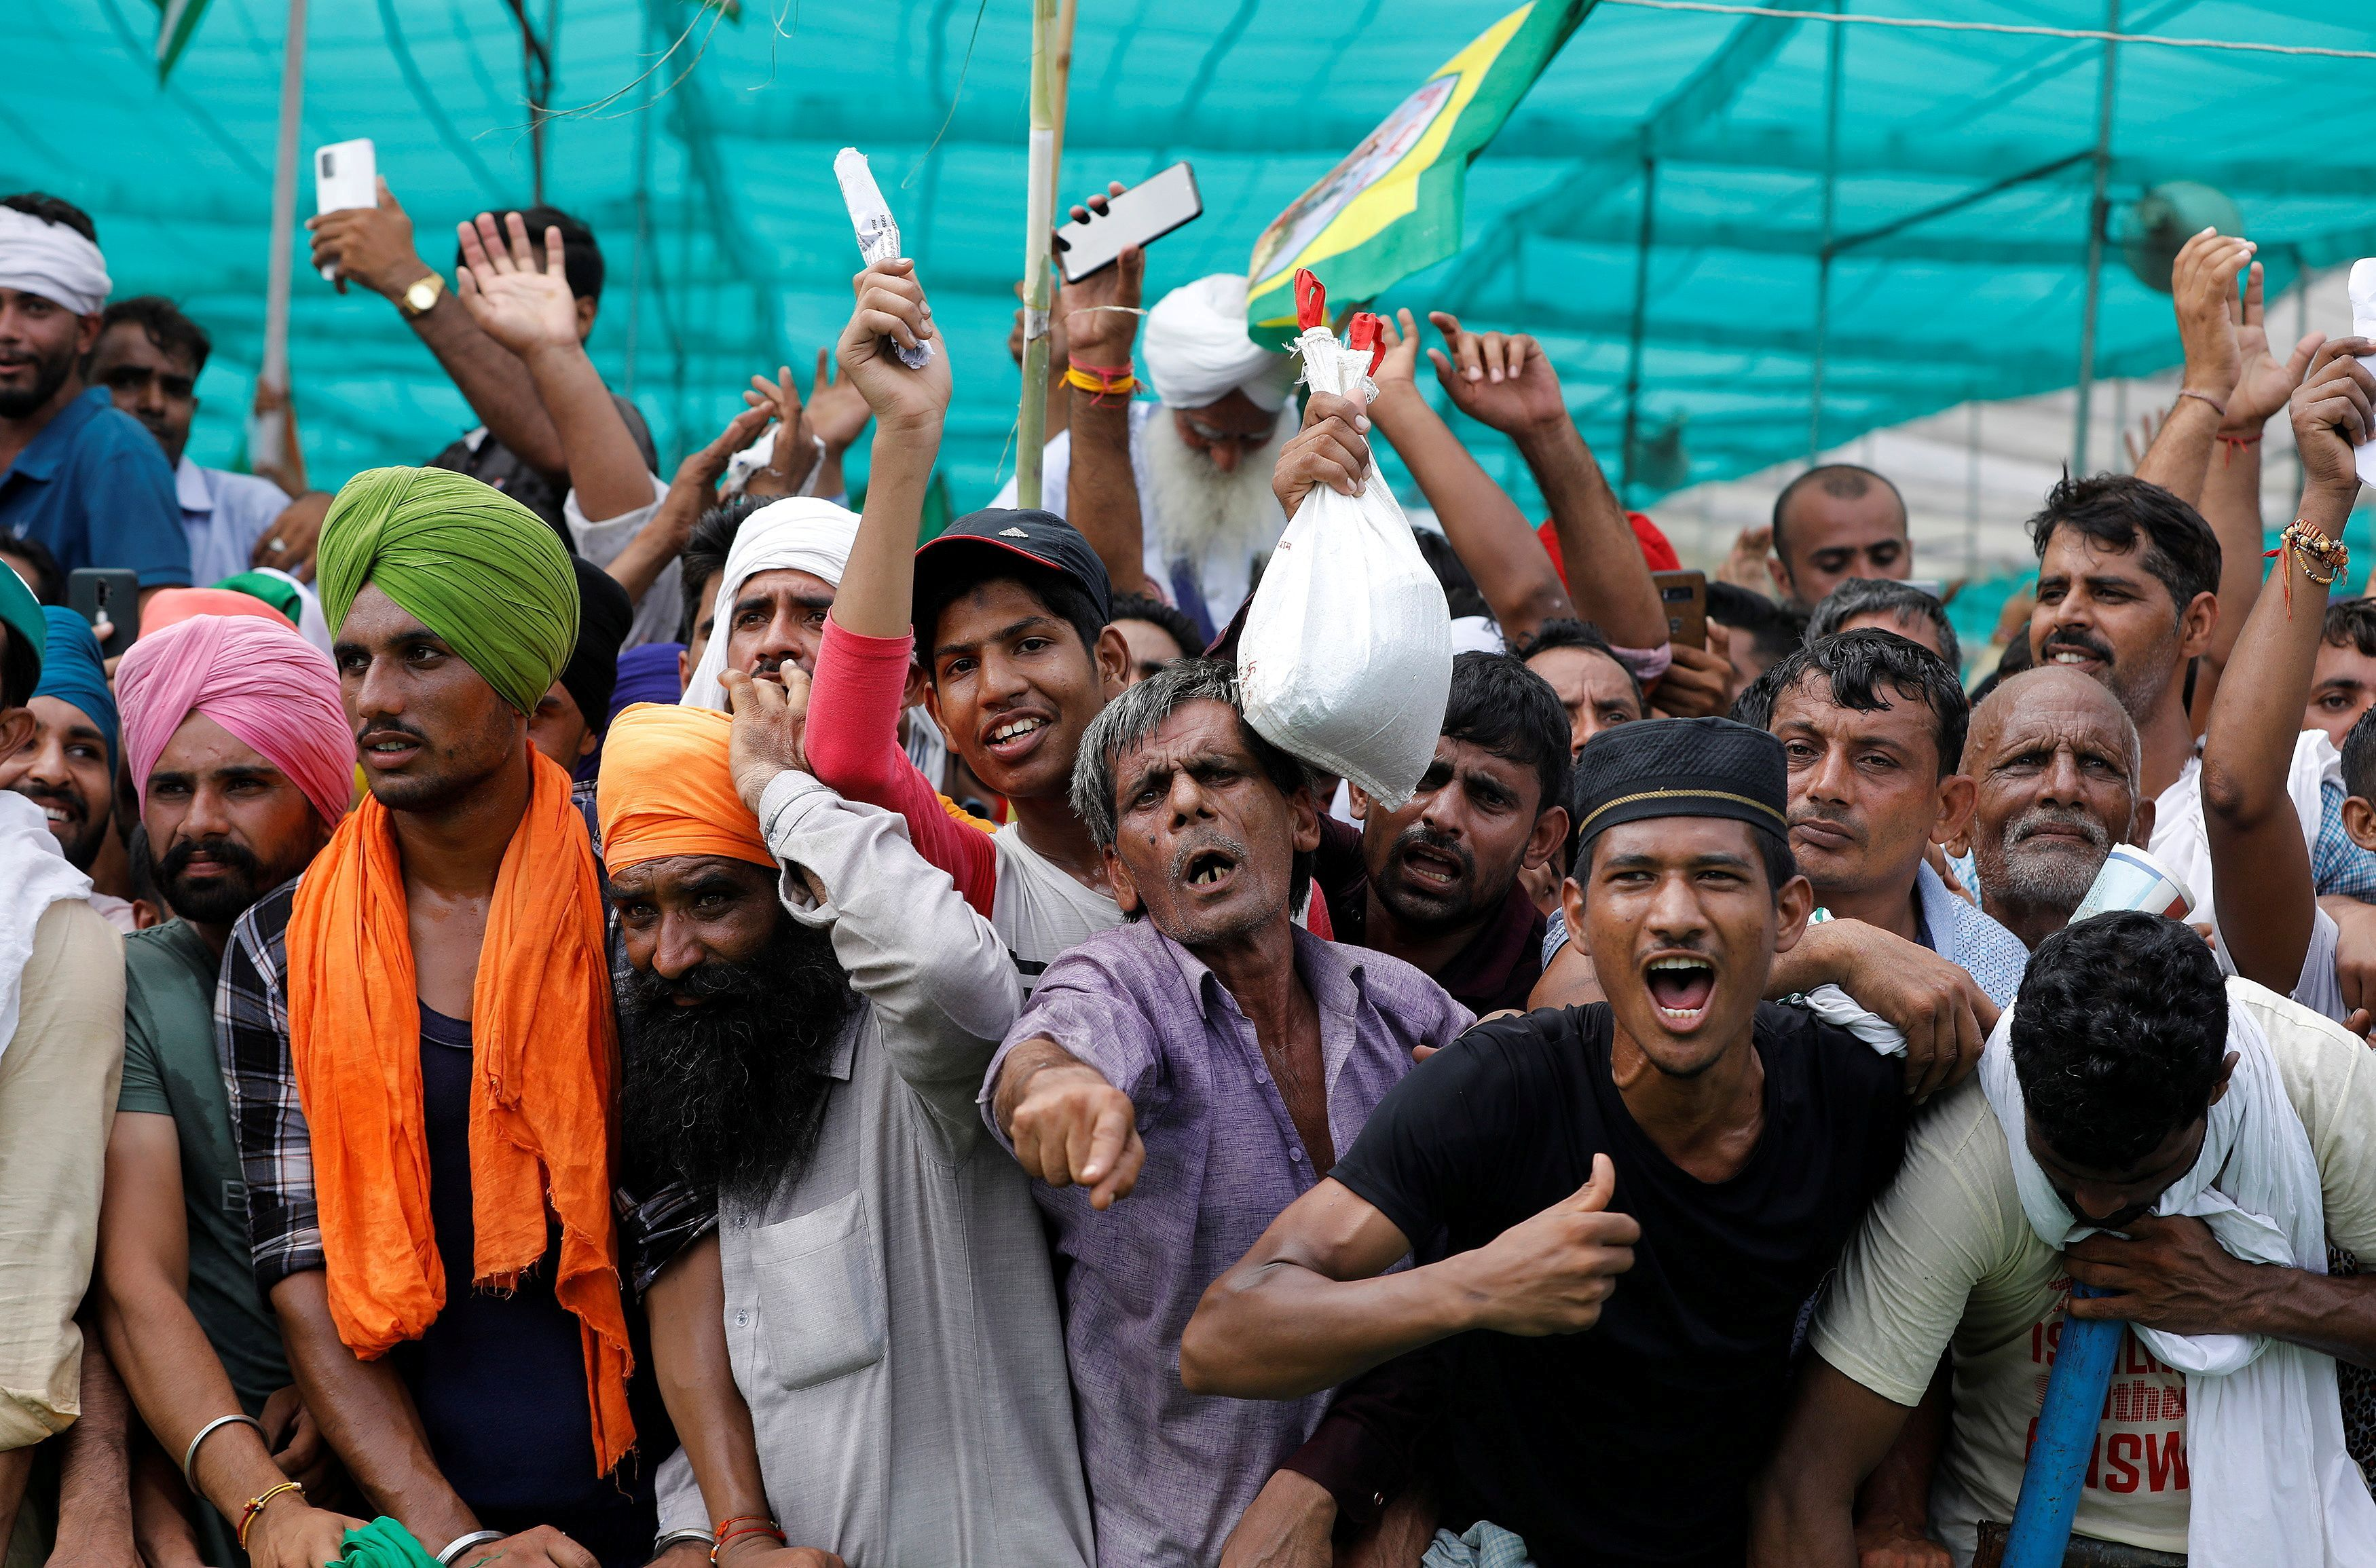 People shout slogans during a Maha Panchayat or grand village council meeting as part of a farmers' protest against farm laws in Muzaffarnagar in the northern state of Uttar Pradesh, India, September 5, 2021. REUTERS/Adnan Abidi